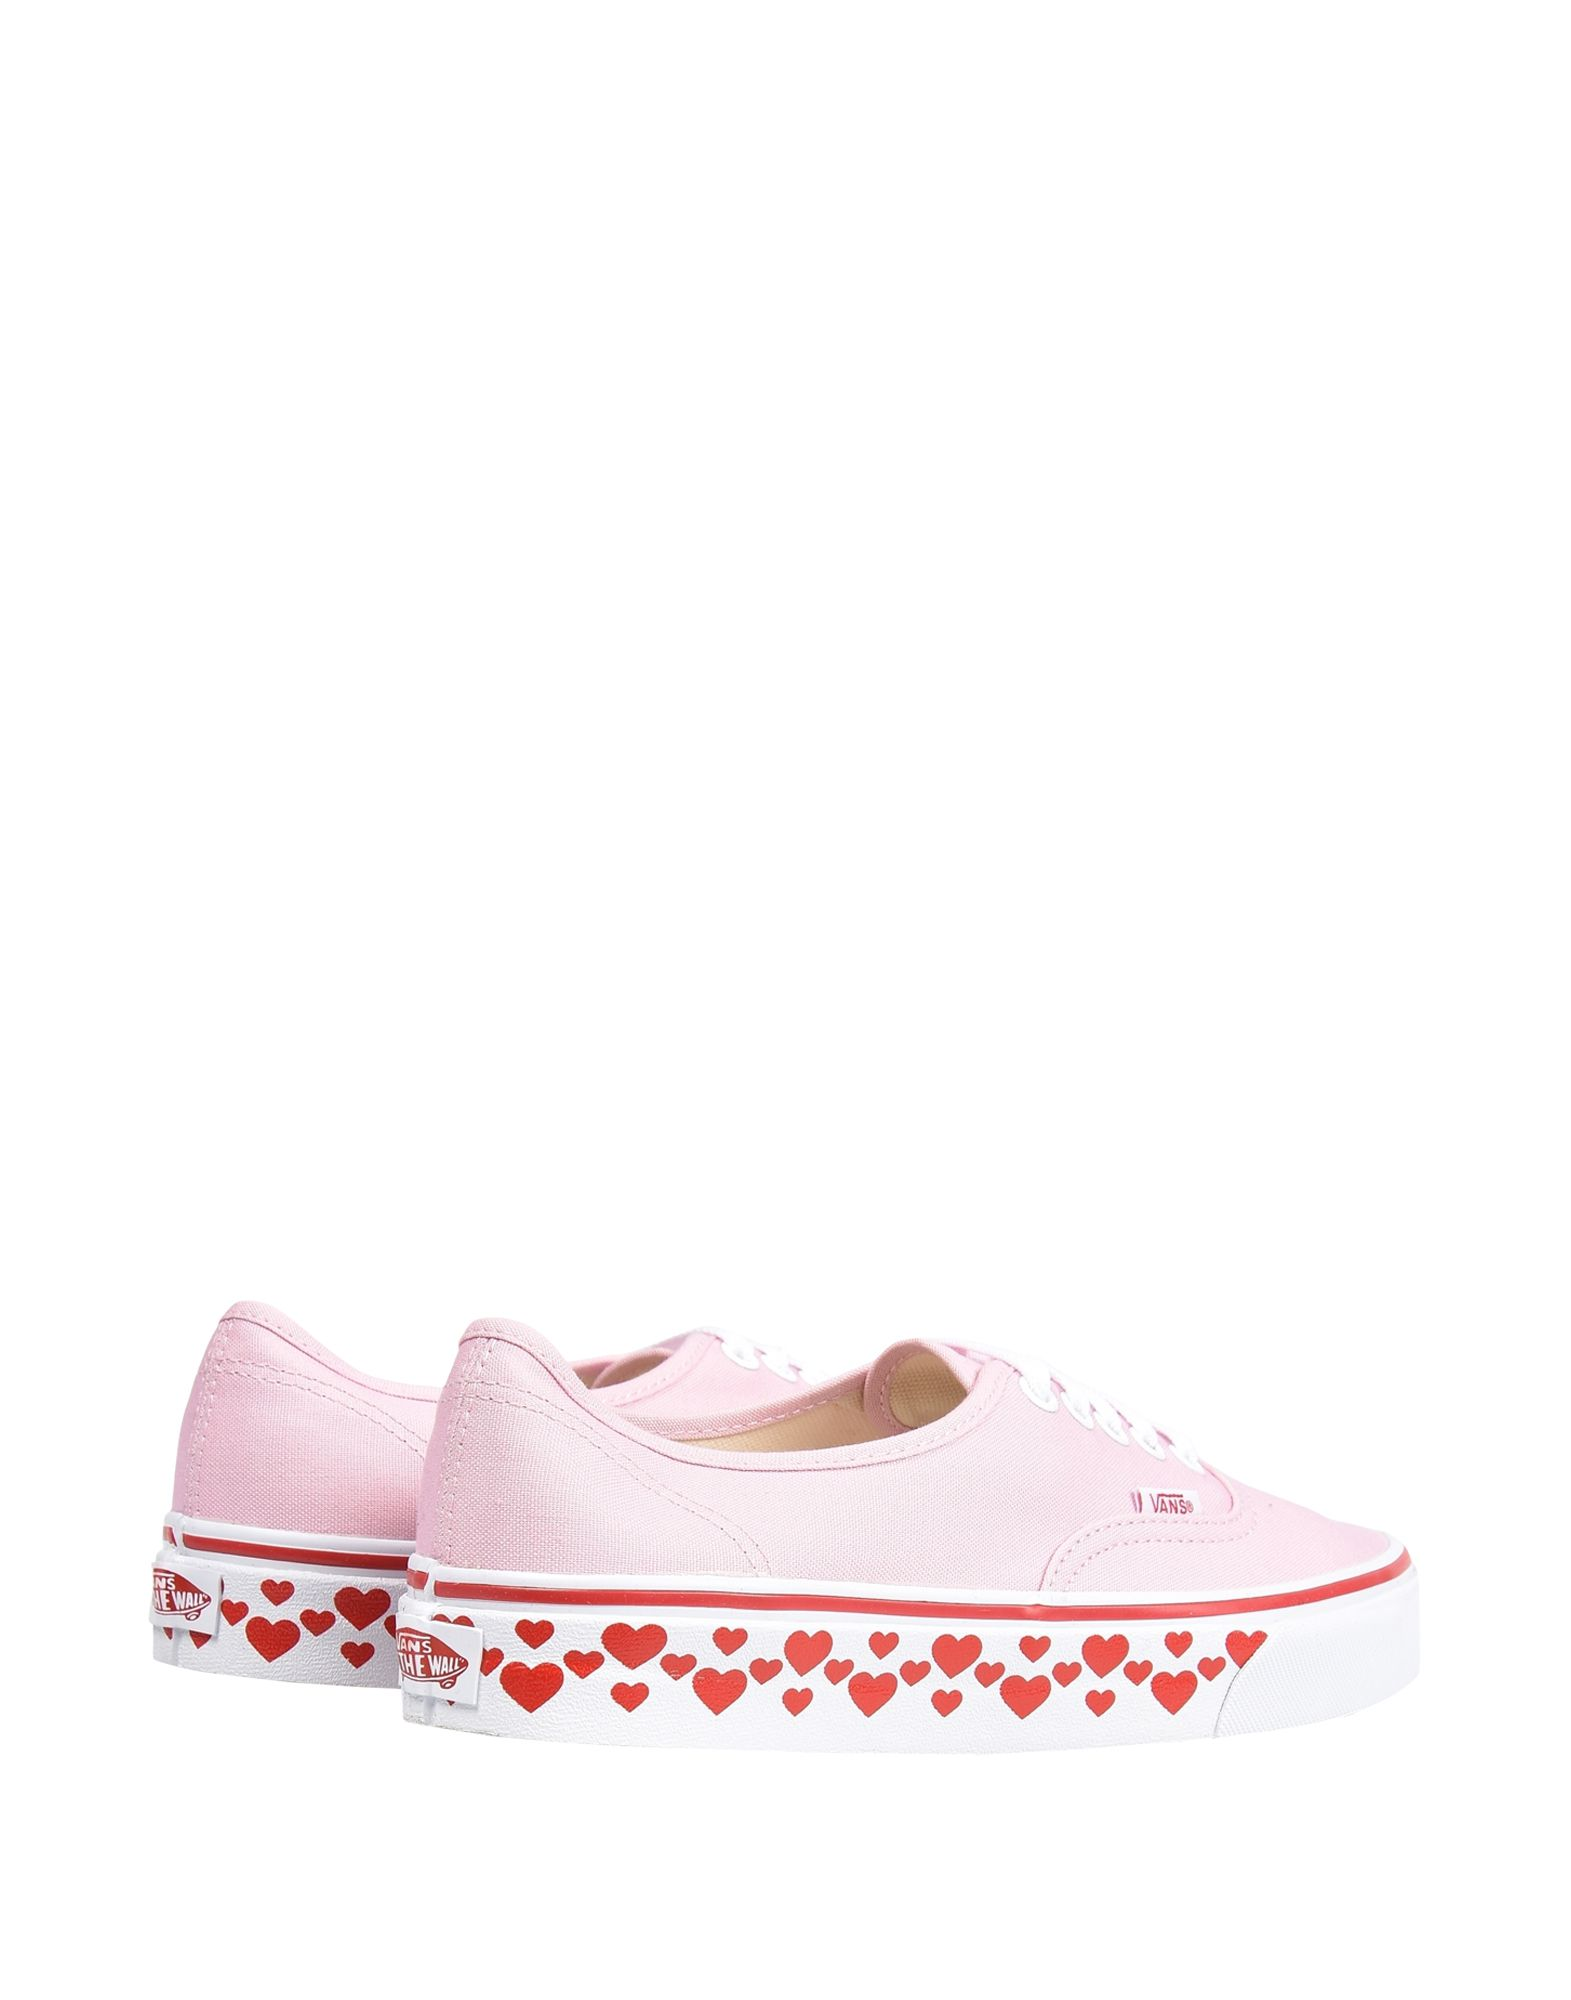 Sneakers Vans Ua Authentic - Hearts Tape - Femme - Sneakers Vans sur